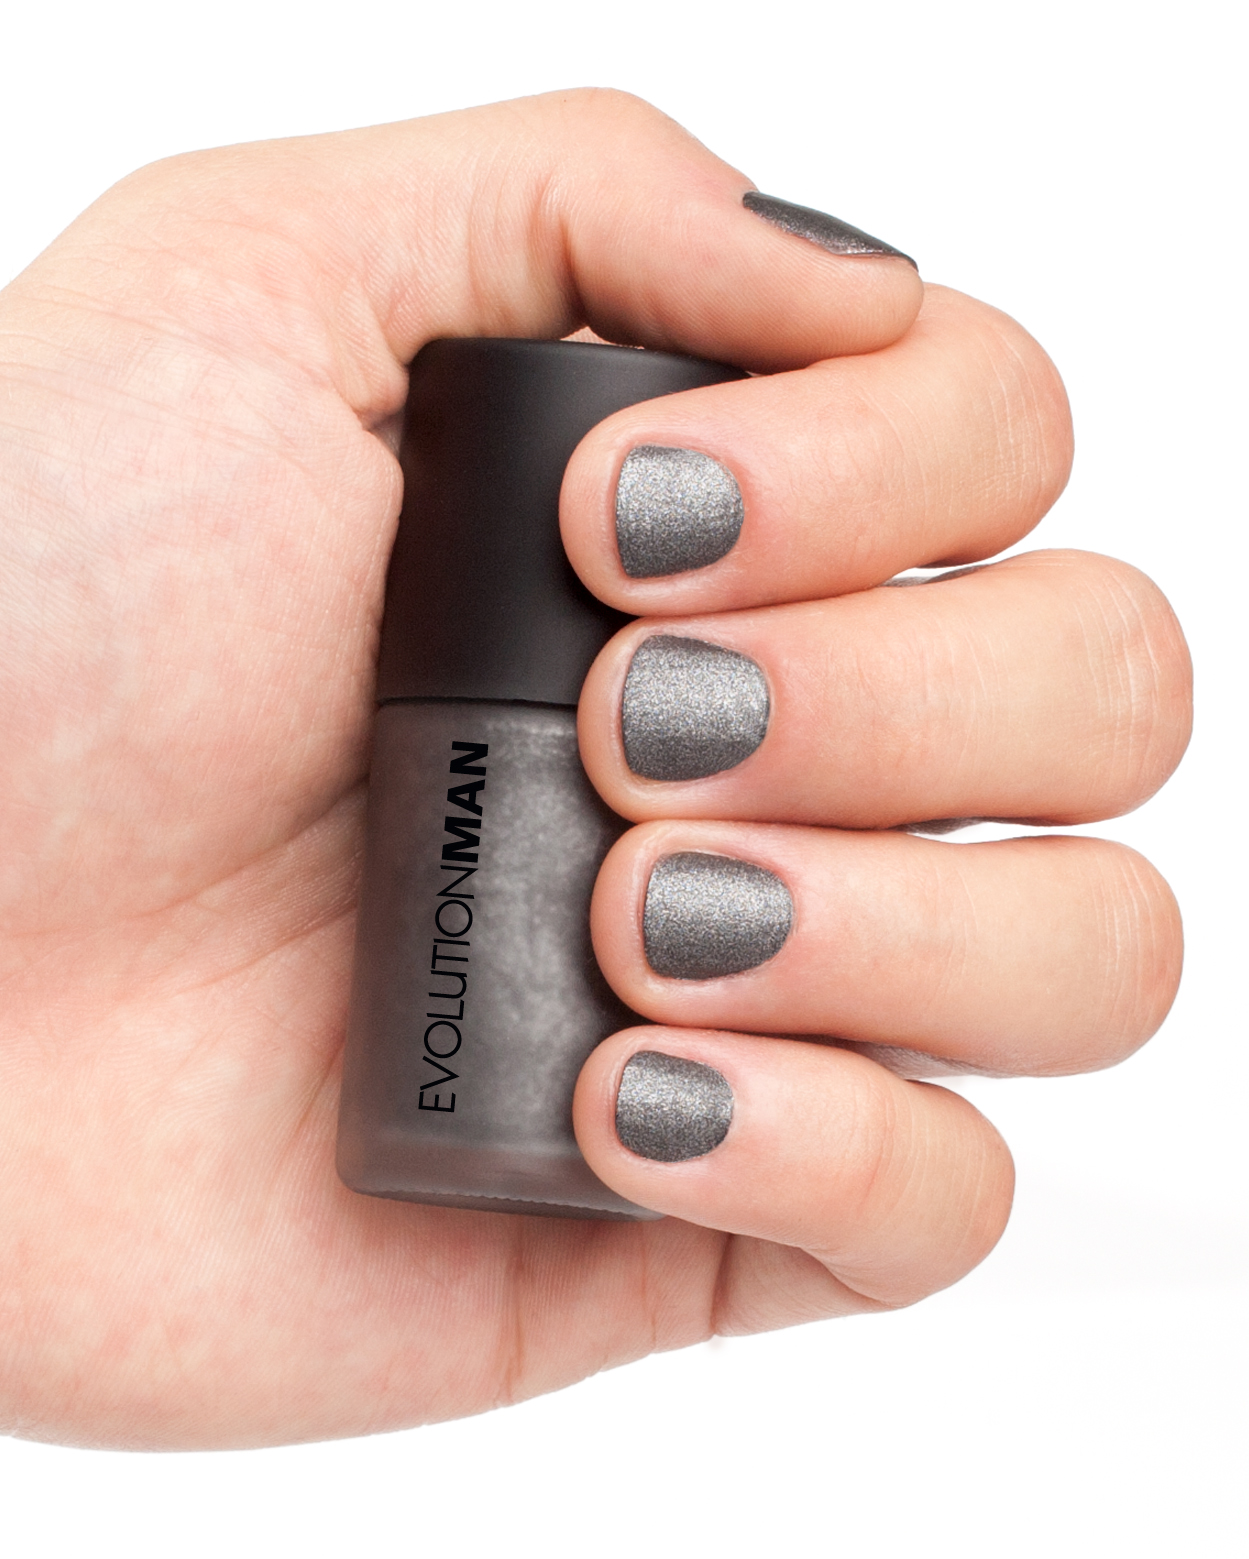 CELEBRITY GROOMER MARCO BERARDINI LAUNCHES REBEL NAIL PAINTS & NAIL ...